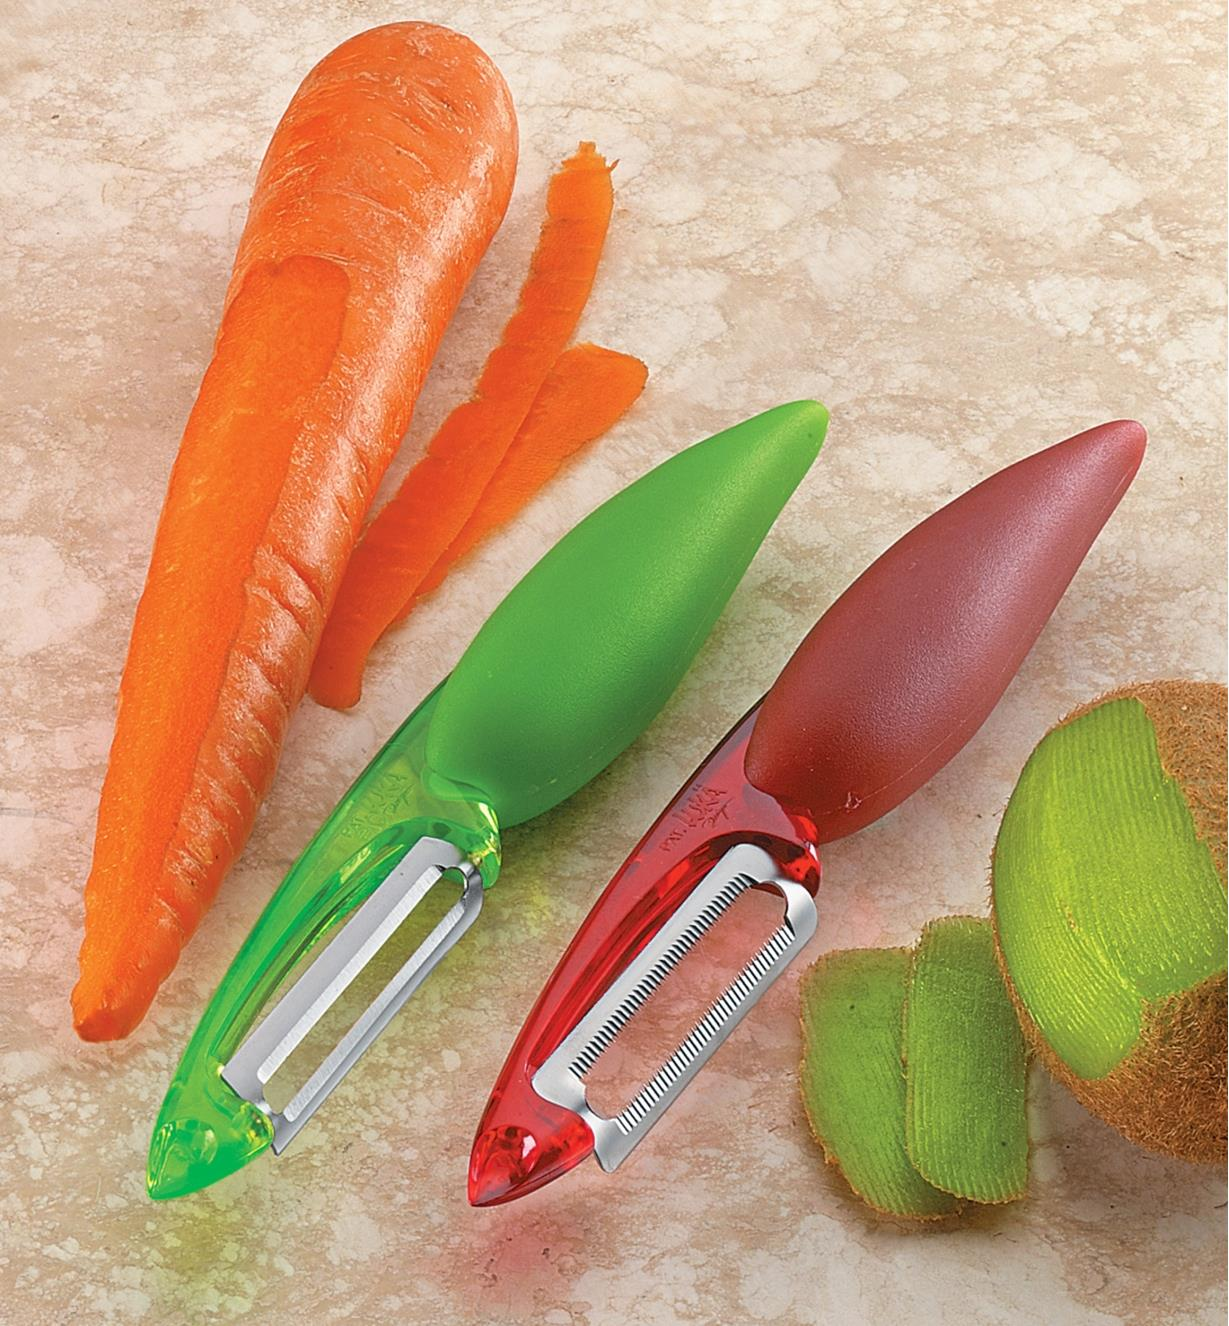 Set of two peelers on a counter beside carrot and kiwi that have just been peeled